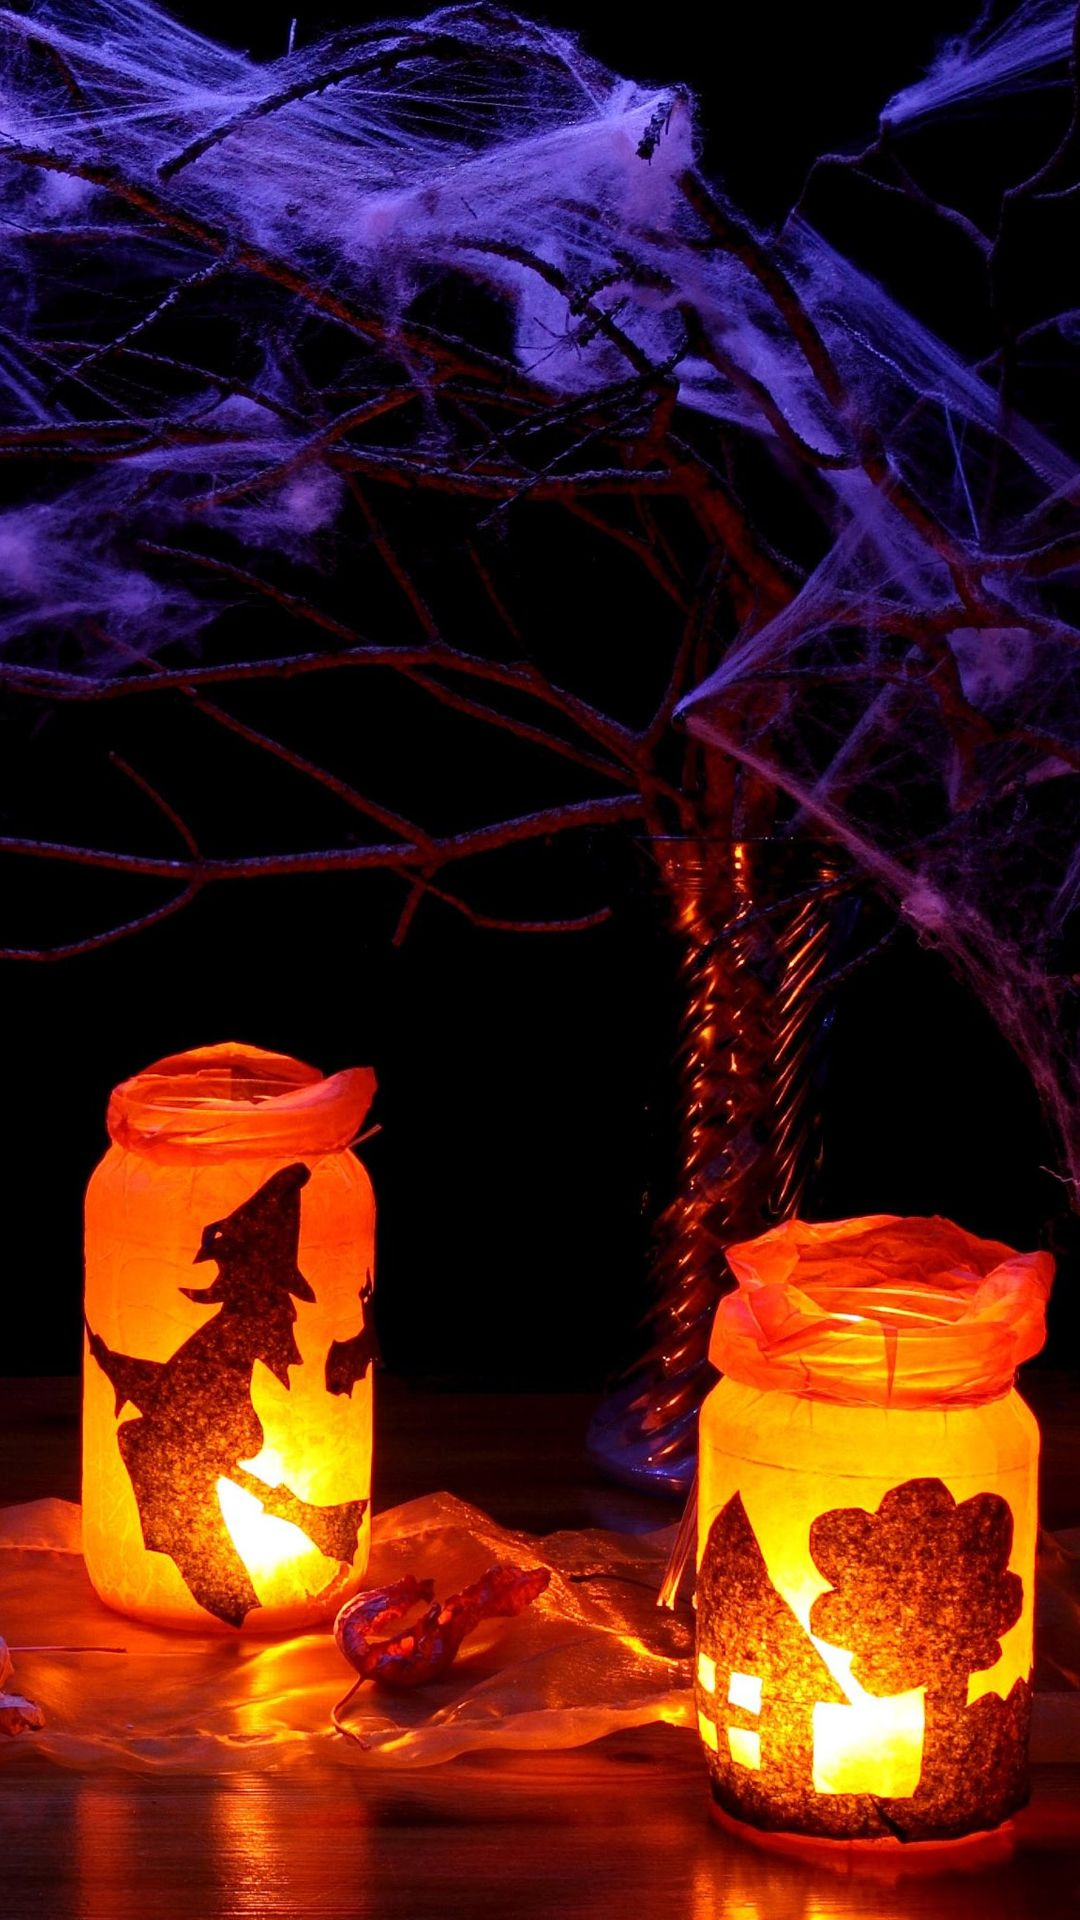 Halloween Theme Iphone 6 Plus Wallpaper Halloween Wallpaper Iphone Halloween Wallpaper Halloween Pictures To Print